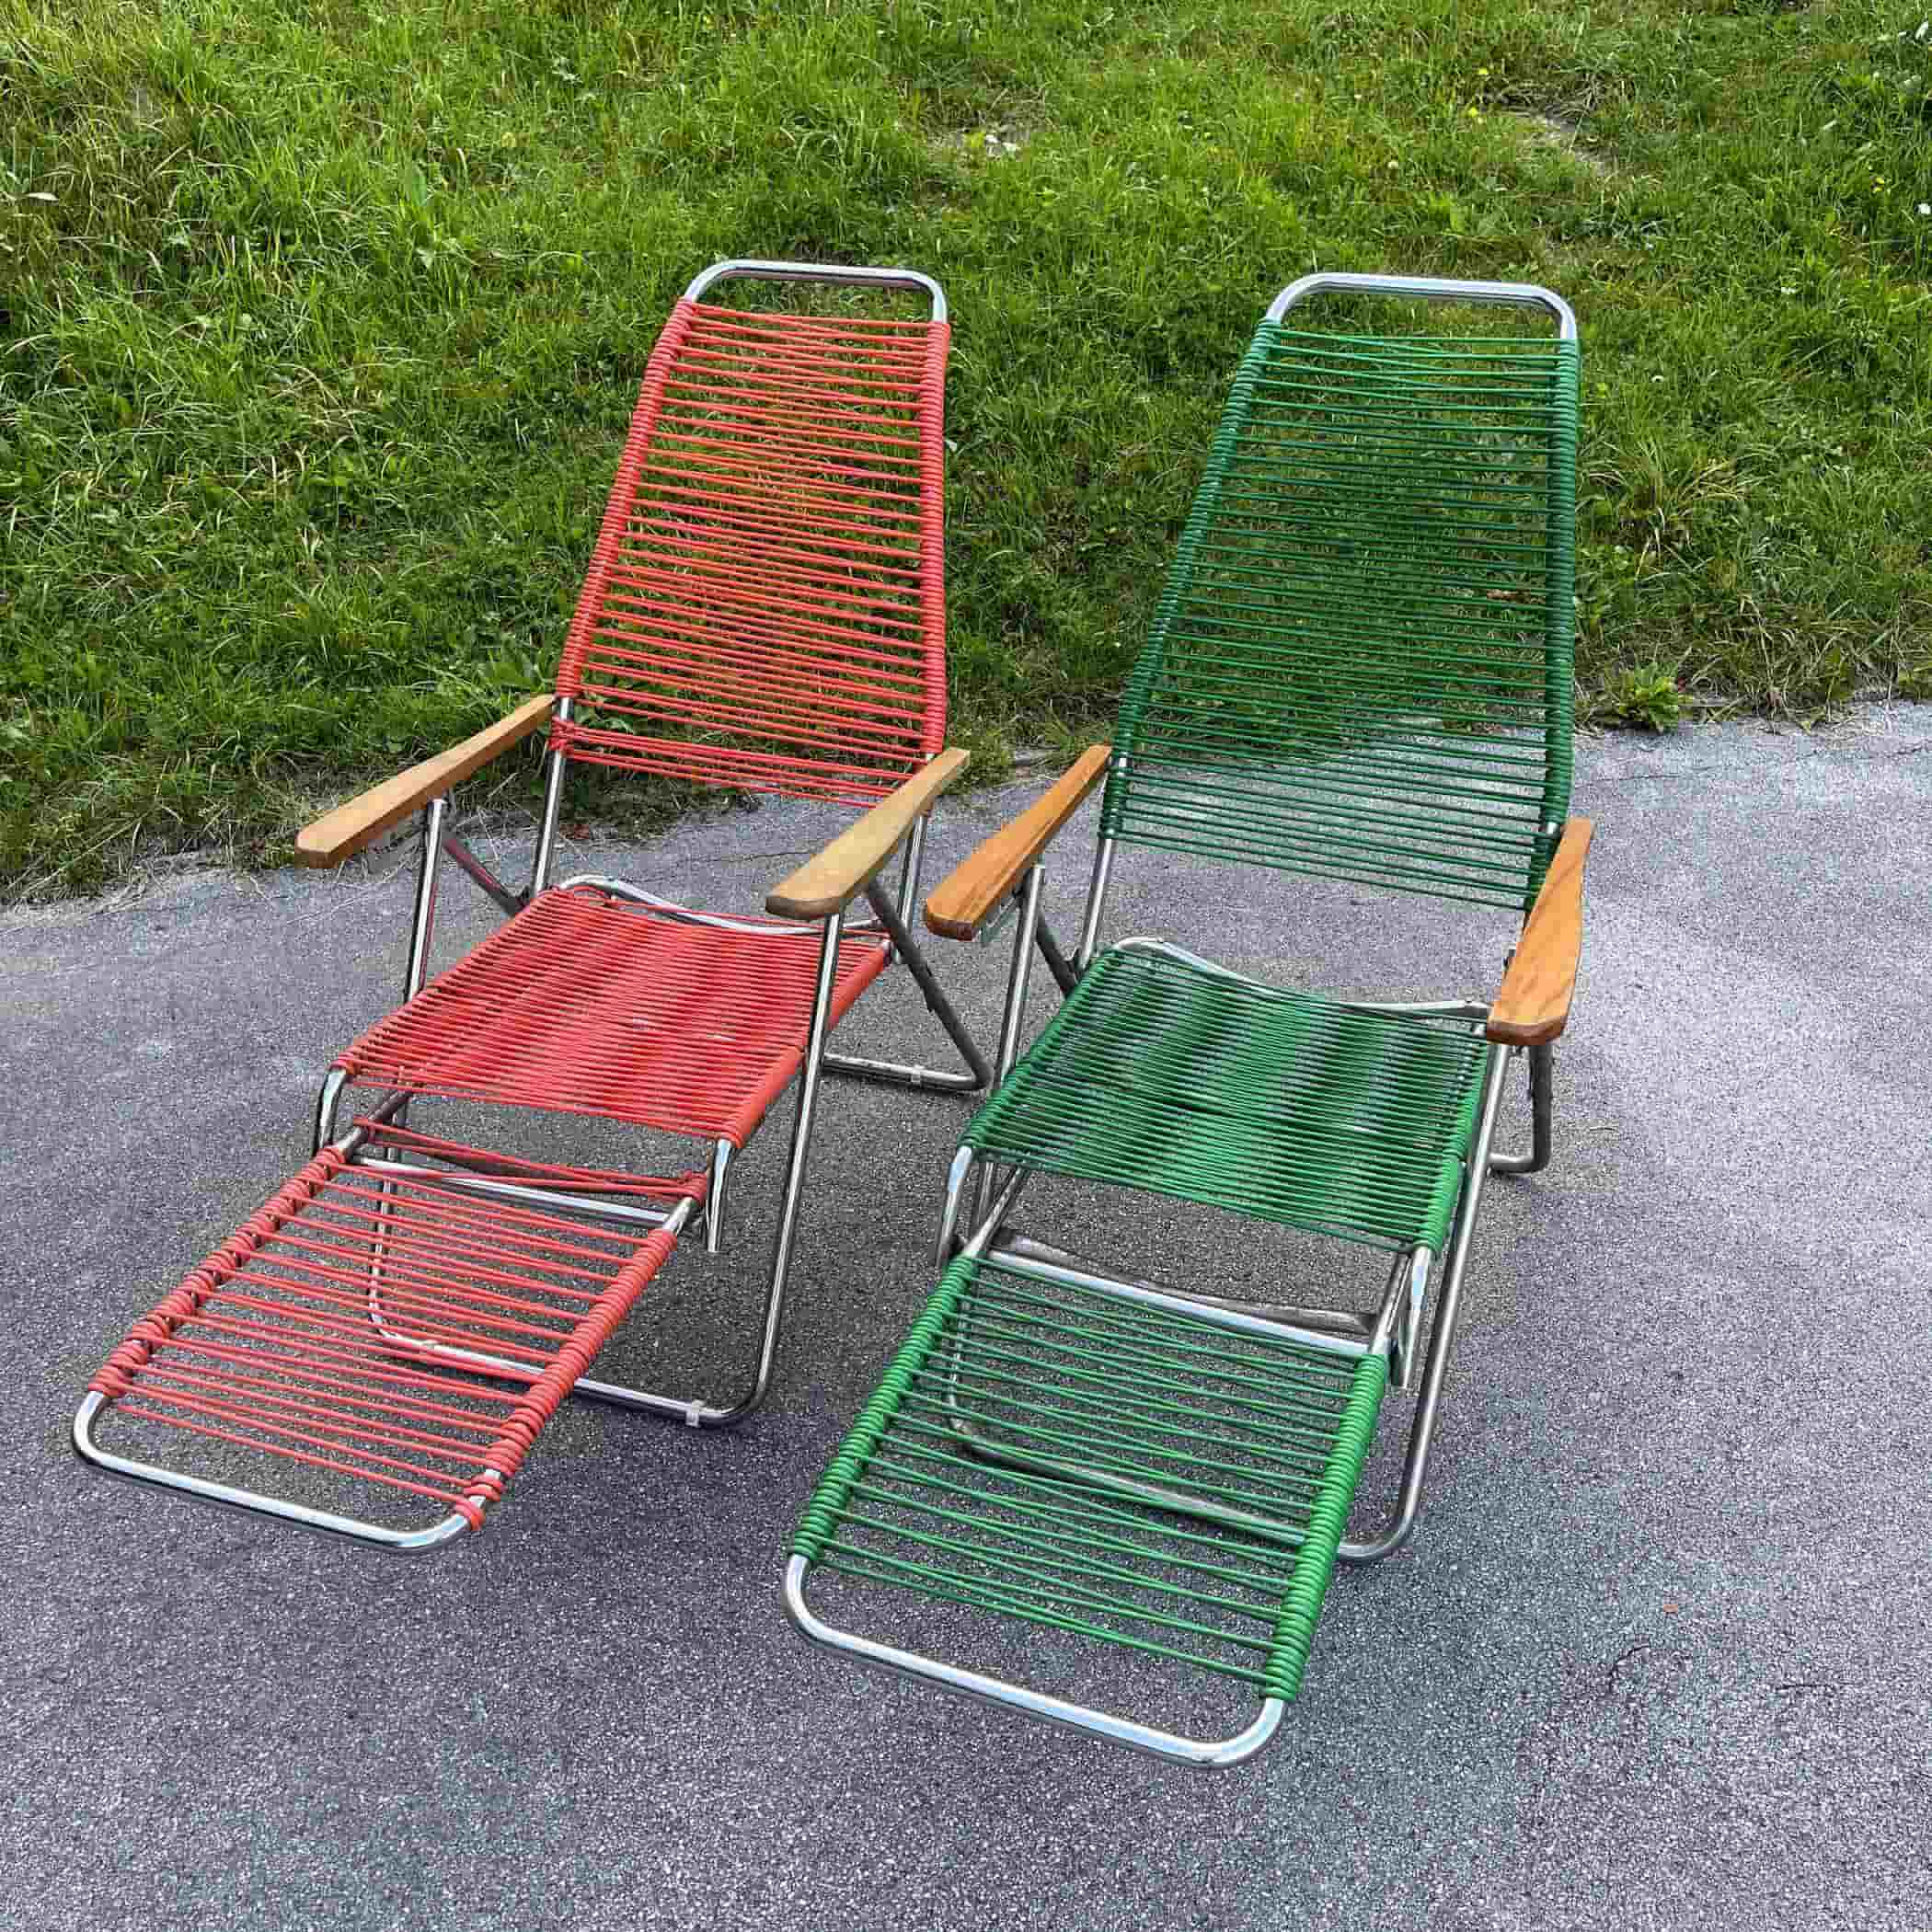 1 of 2 Vintage vinyl folding chair Italy 1970s Creen and Red camping lawn chair patio furniture